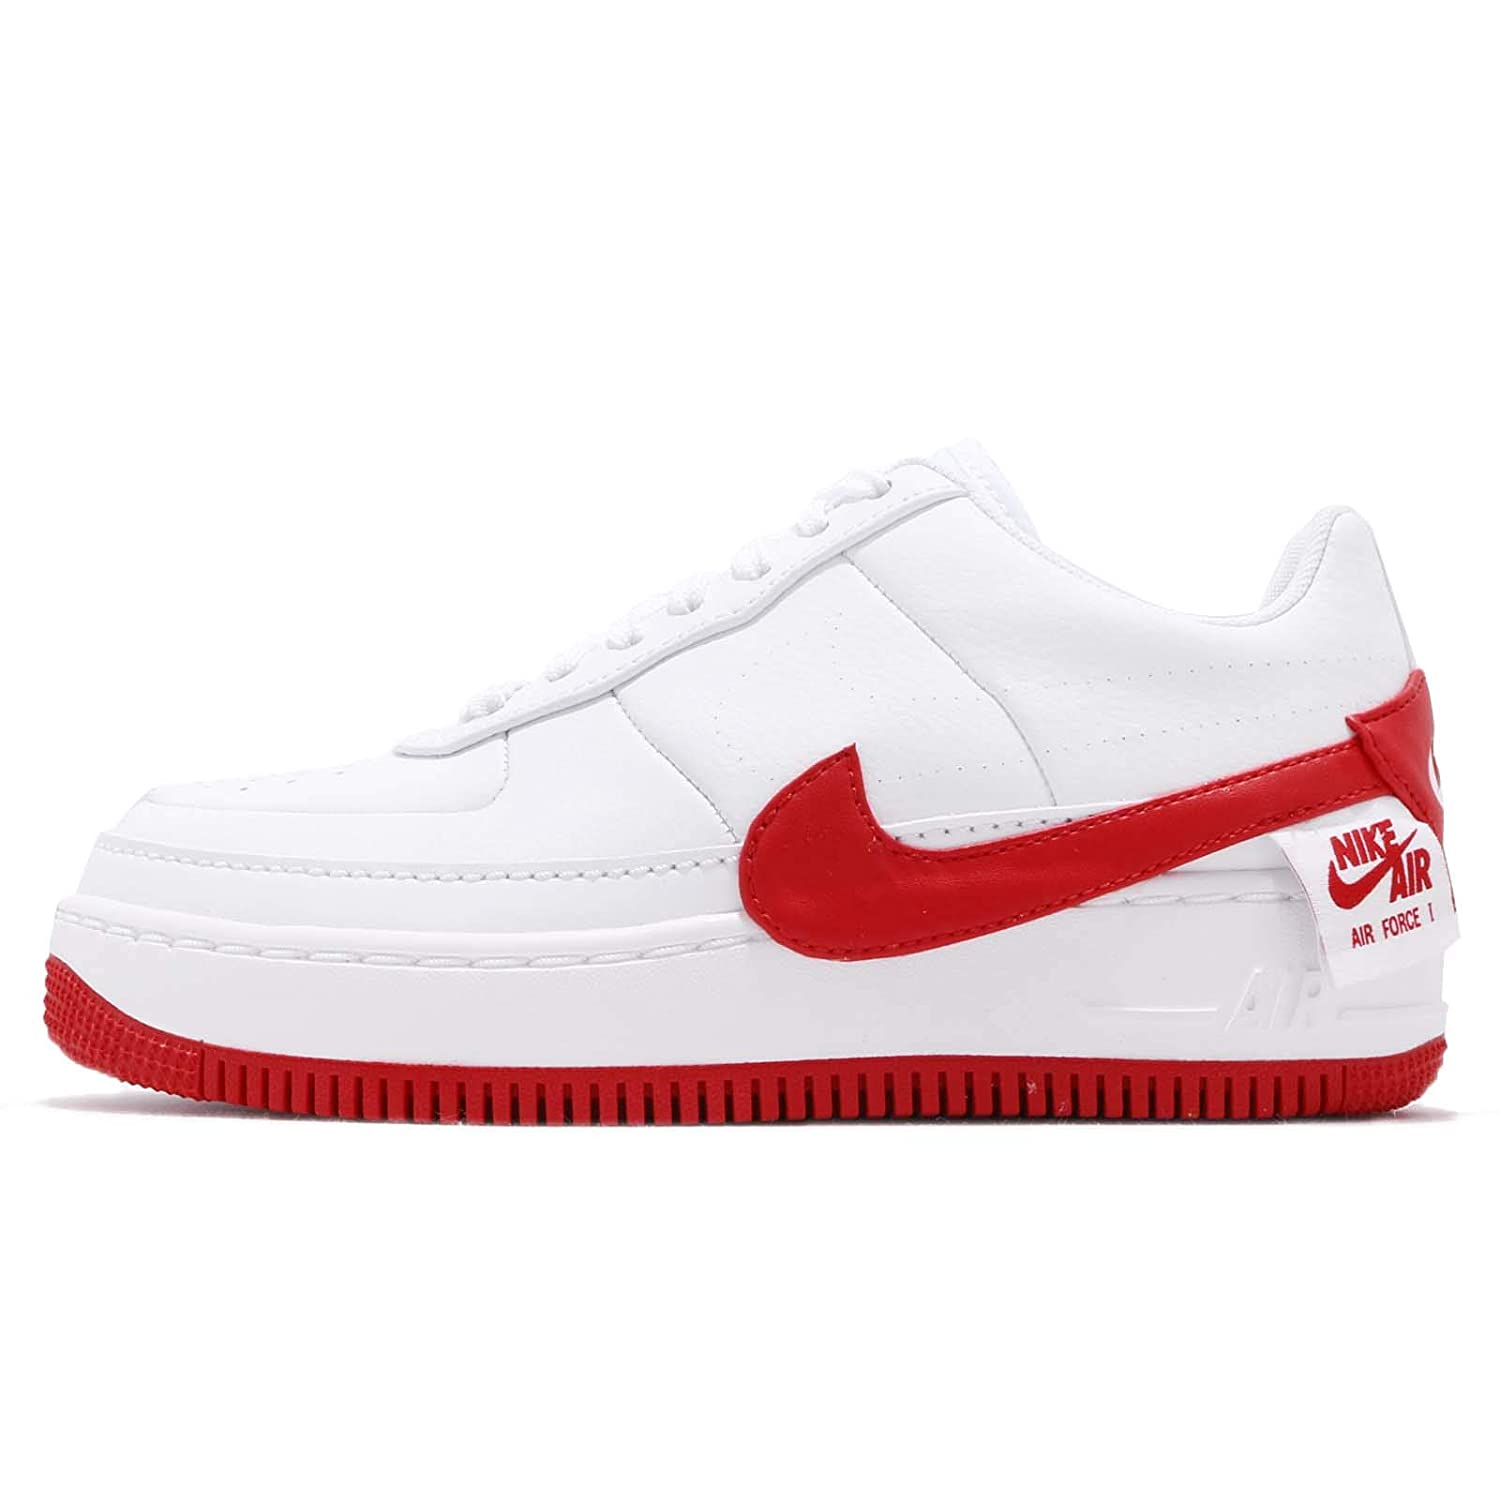 Blanc (blanc (blanc University rouge 001) Nike W Af1 Jester XX, paniers Basses Femme  juste pour toi